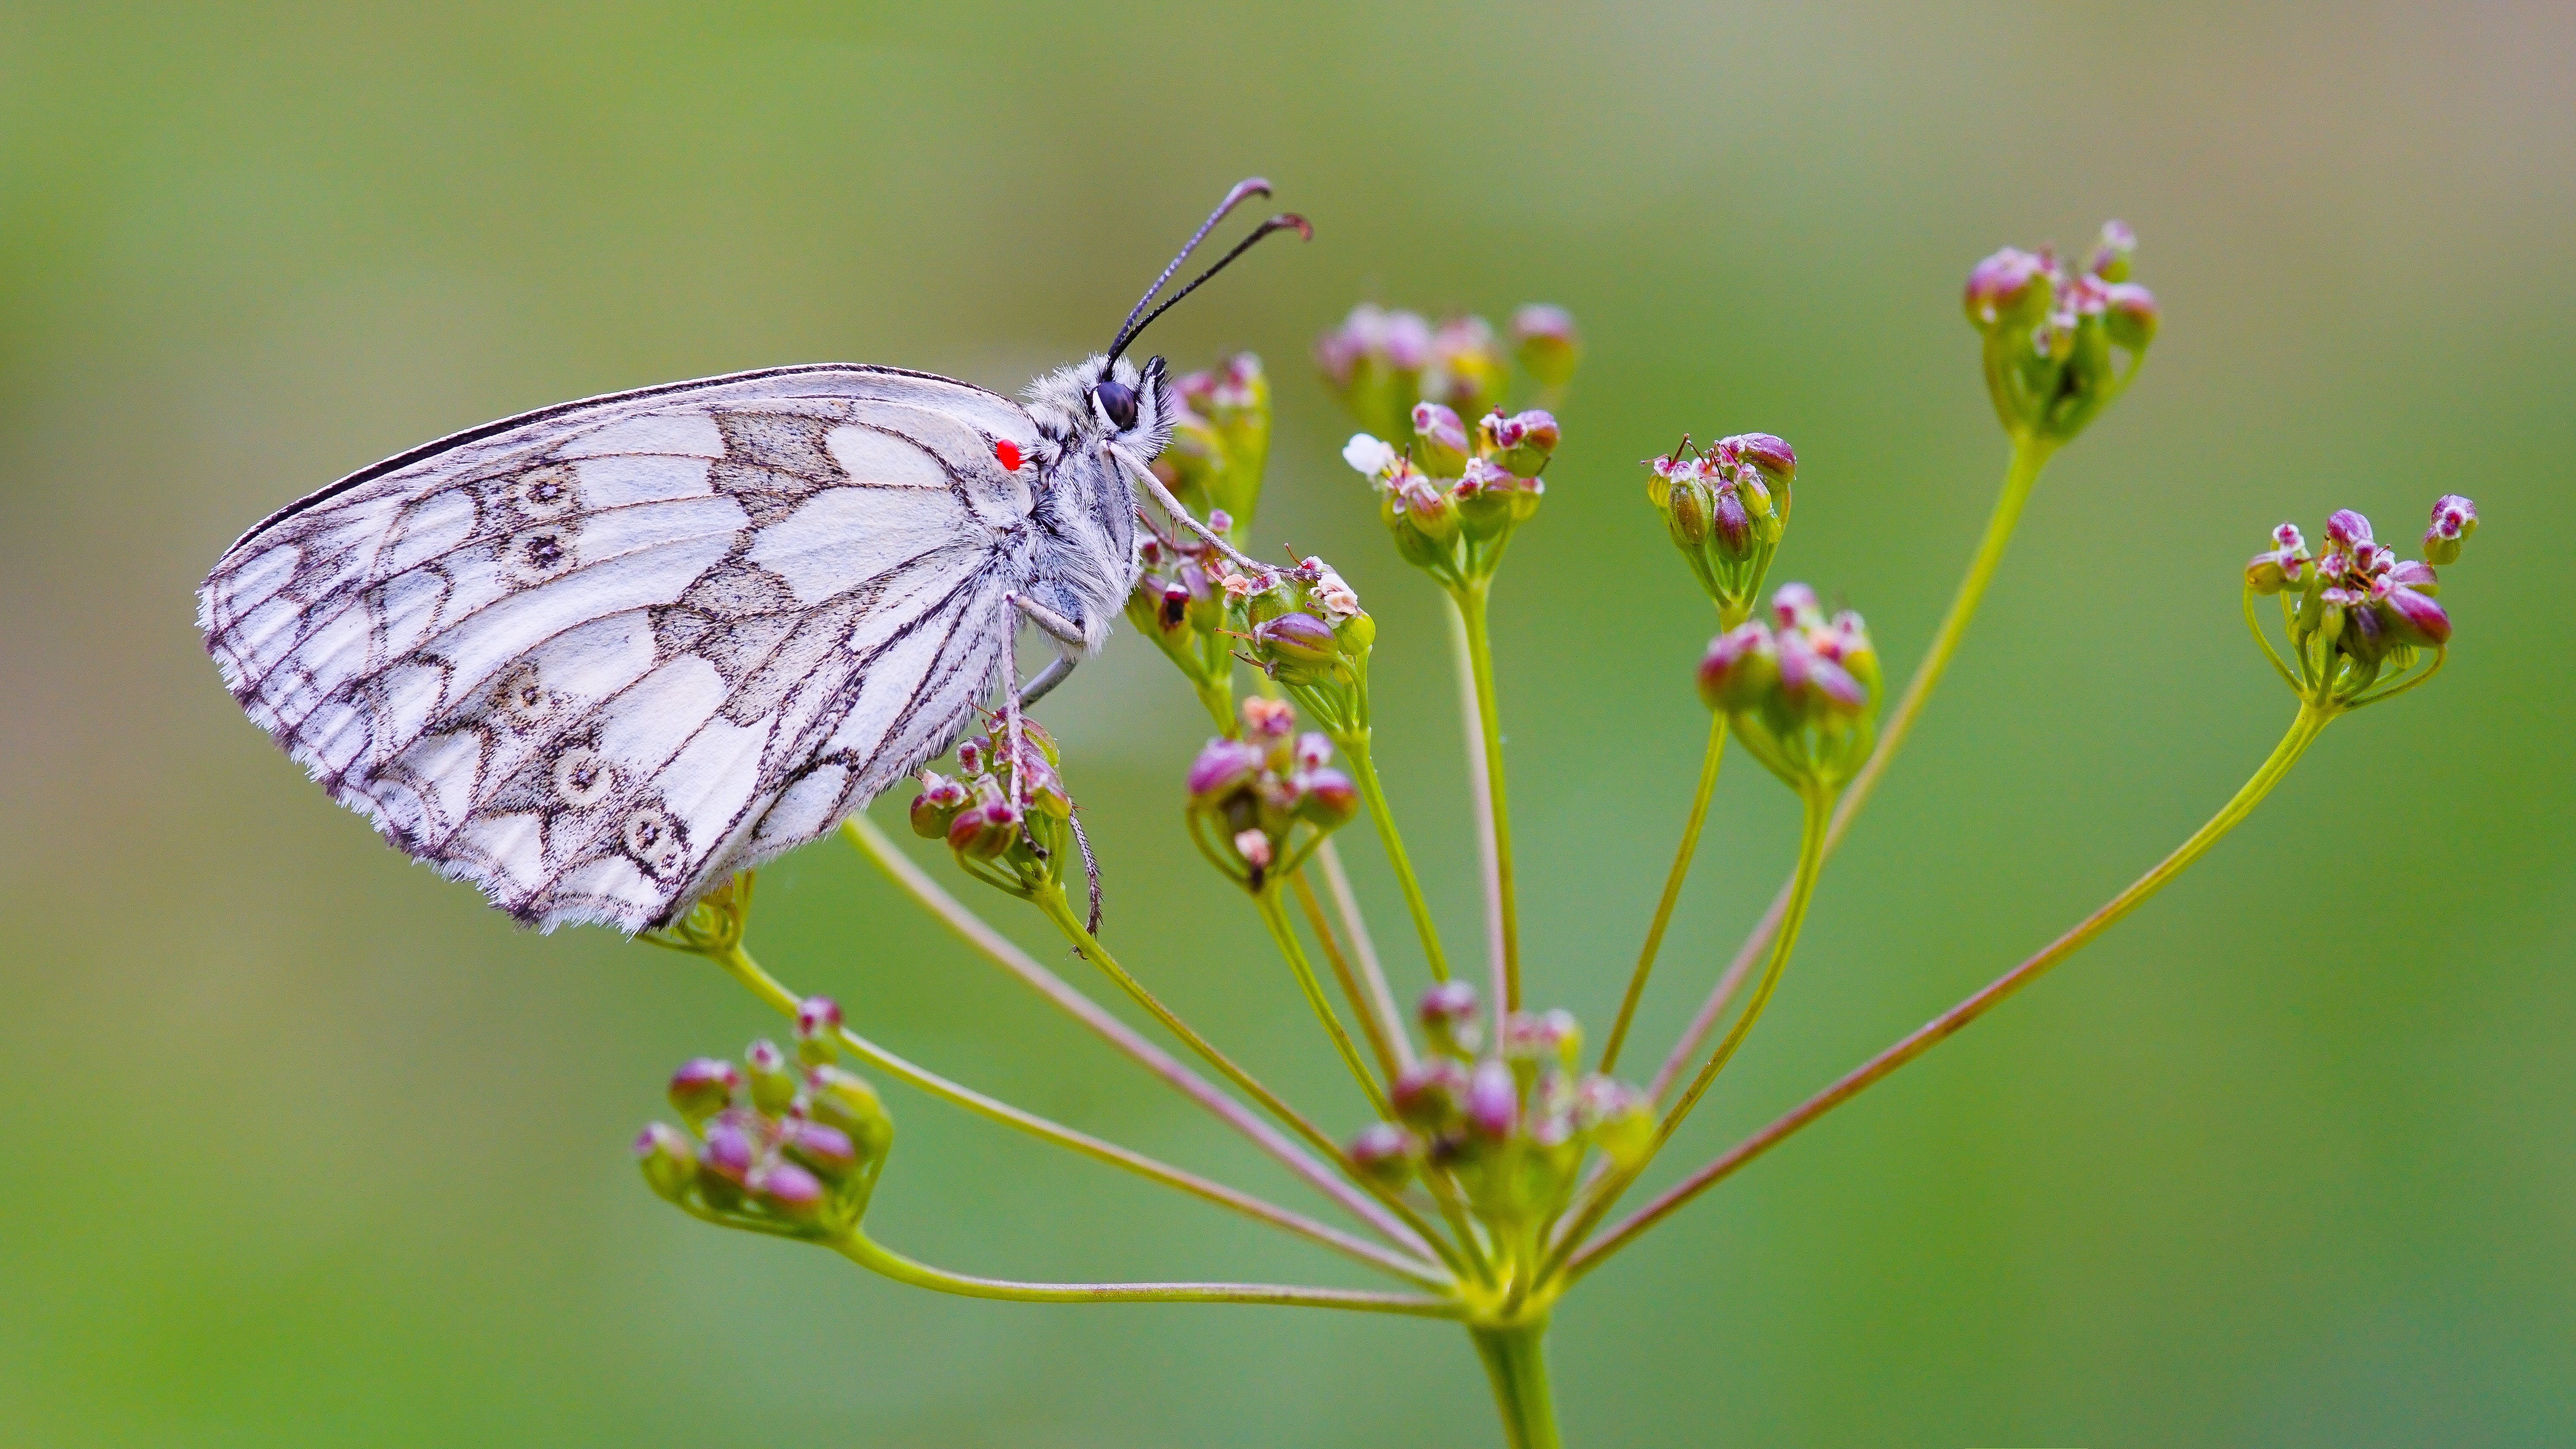 White and Gray Butterfly on Red Flower during Daytime